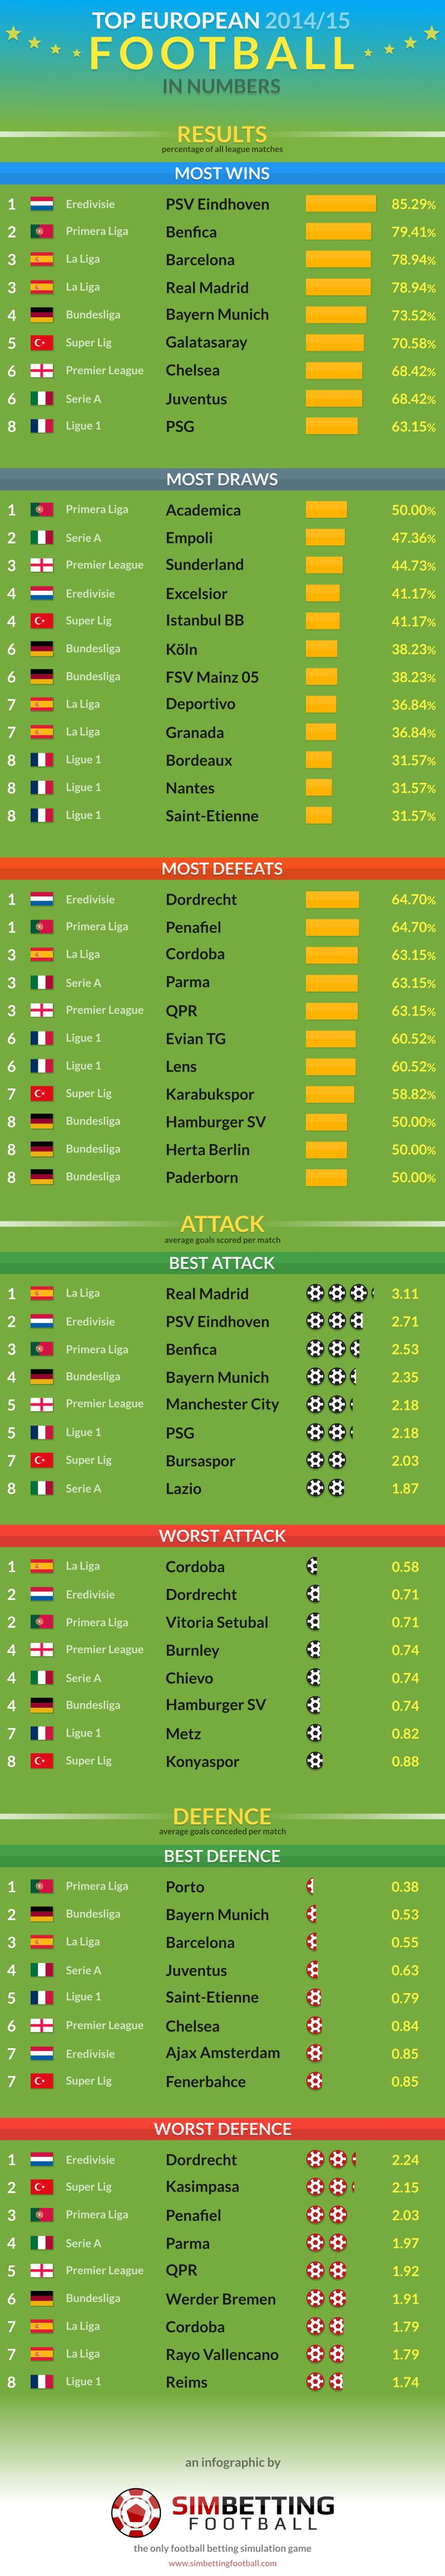 An infographic which shows top European 2014/2015 football in numbers, featuring statistics from the main European football leagues.   #infographic #football #soccer #stats #data #numbers